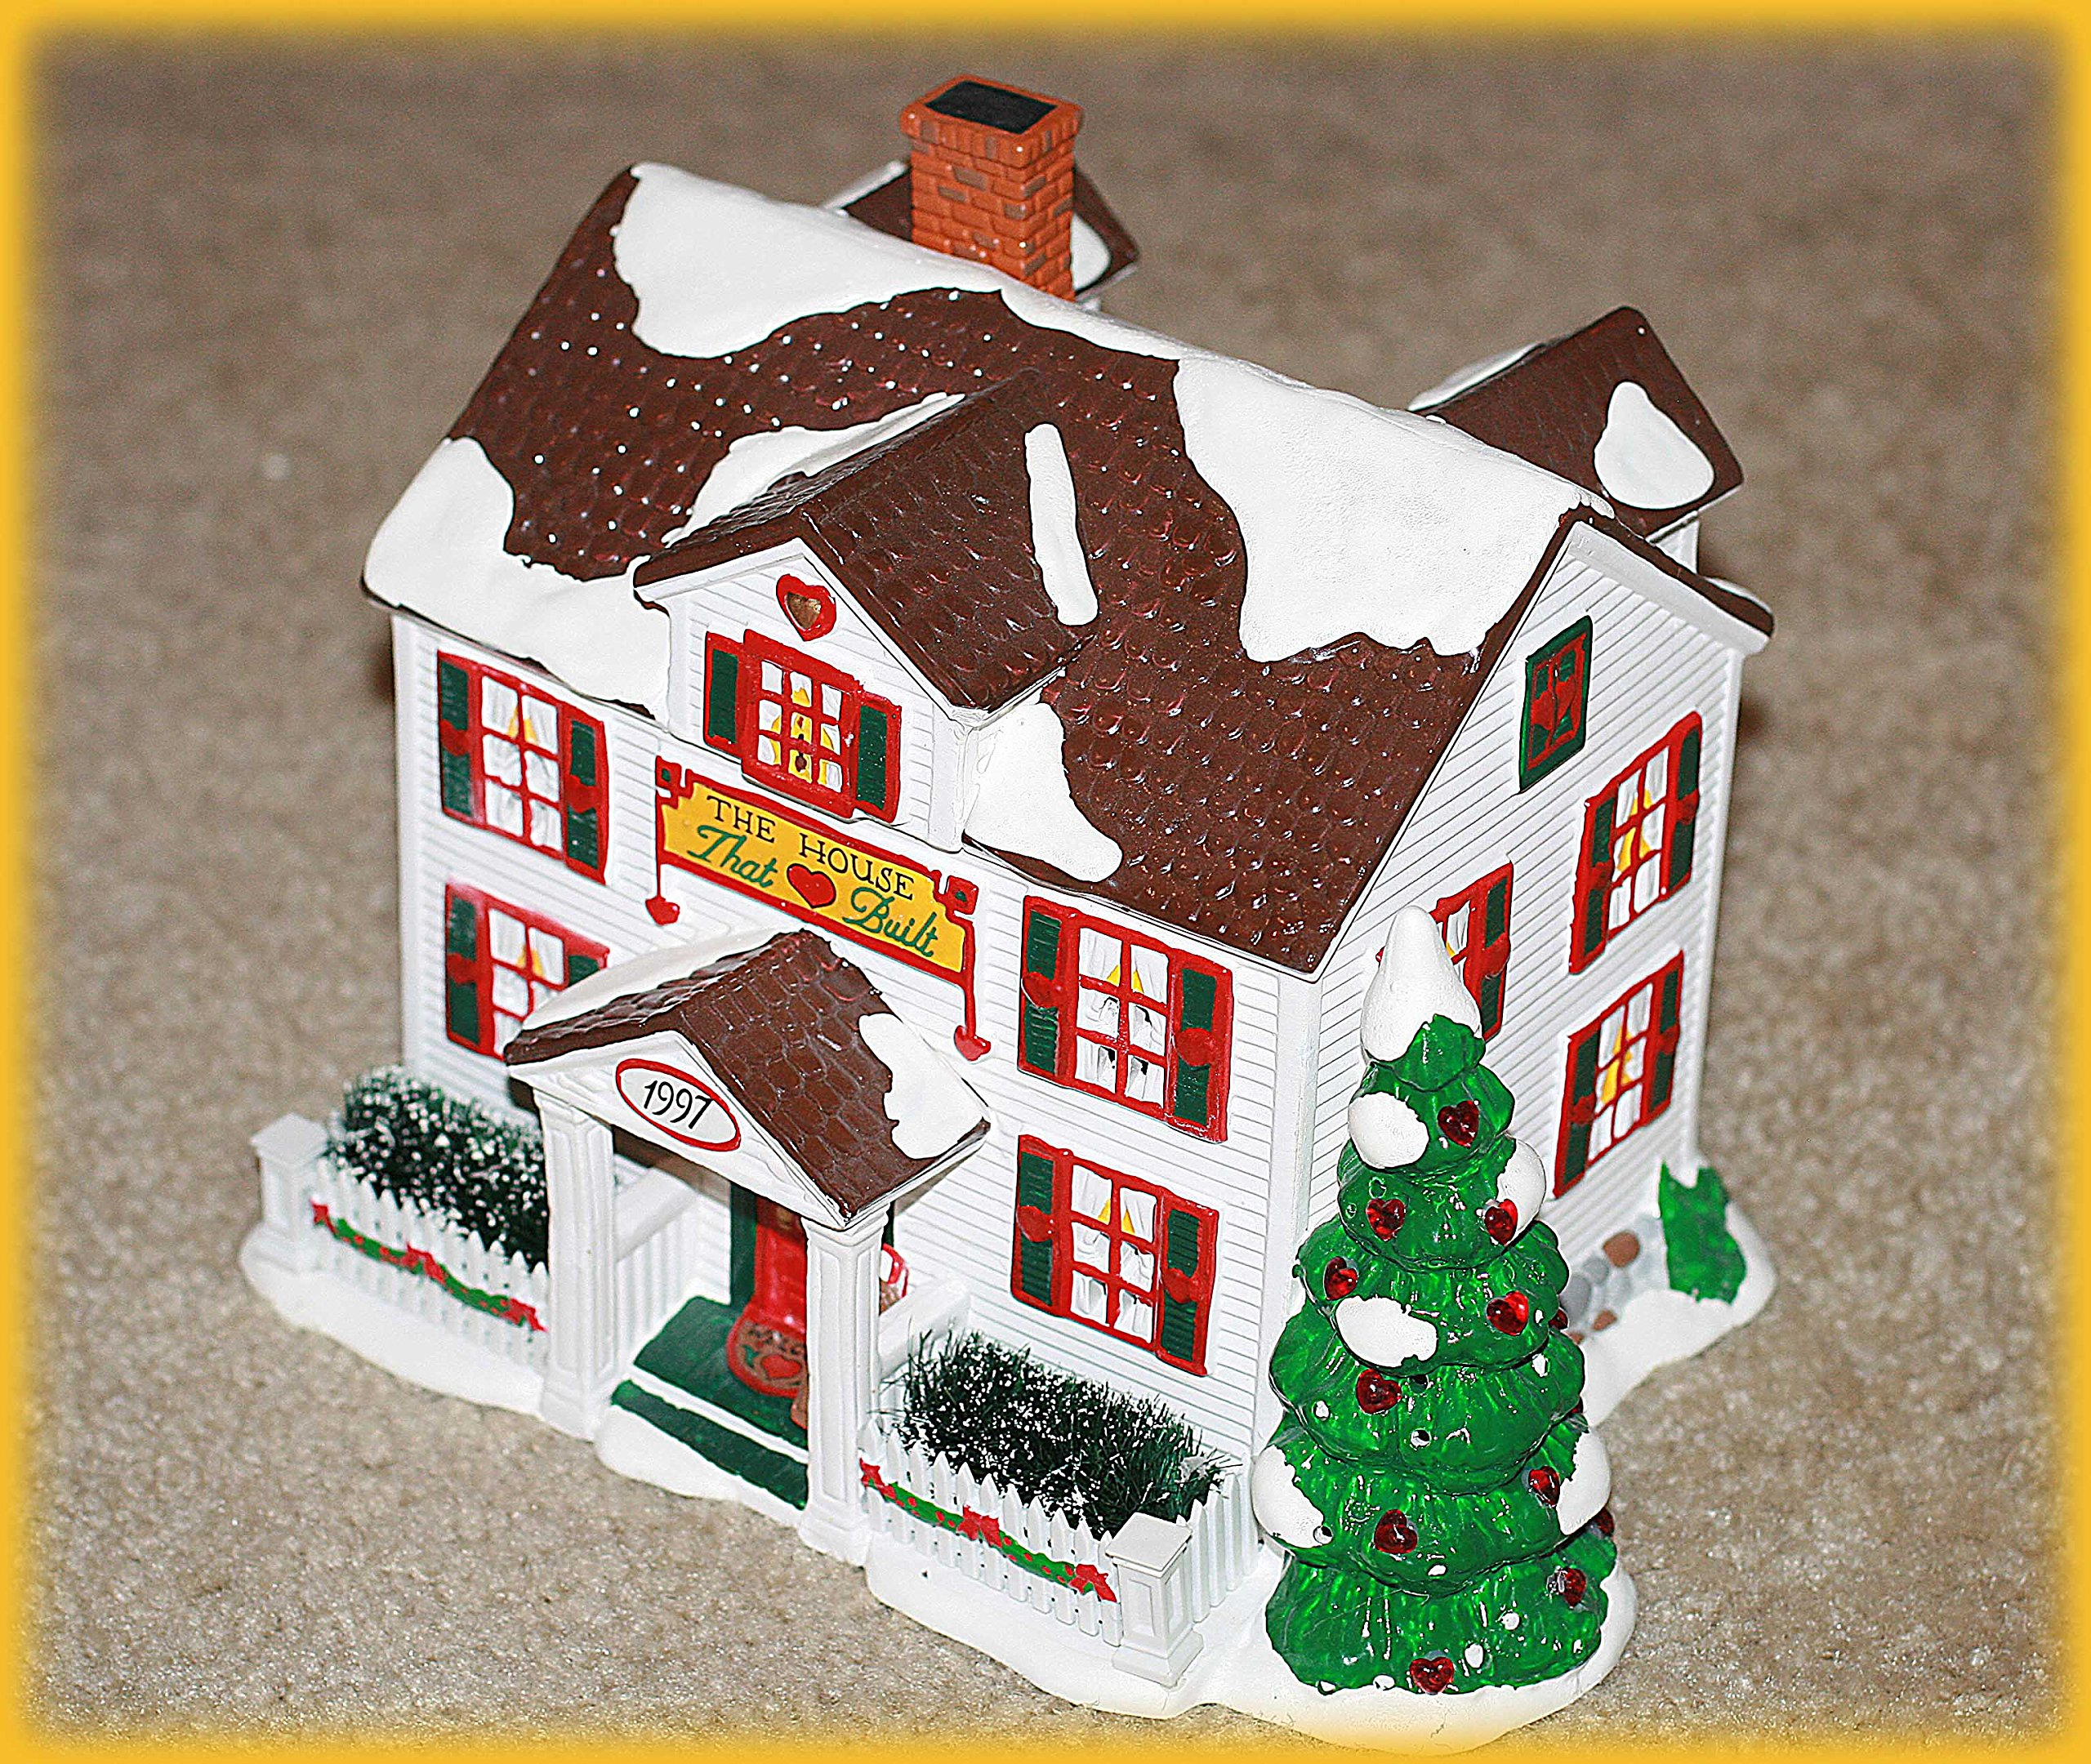 The House That Love Built, The Ronald McDonald House by Department 56